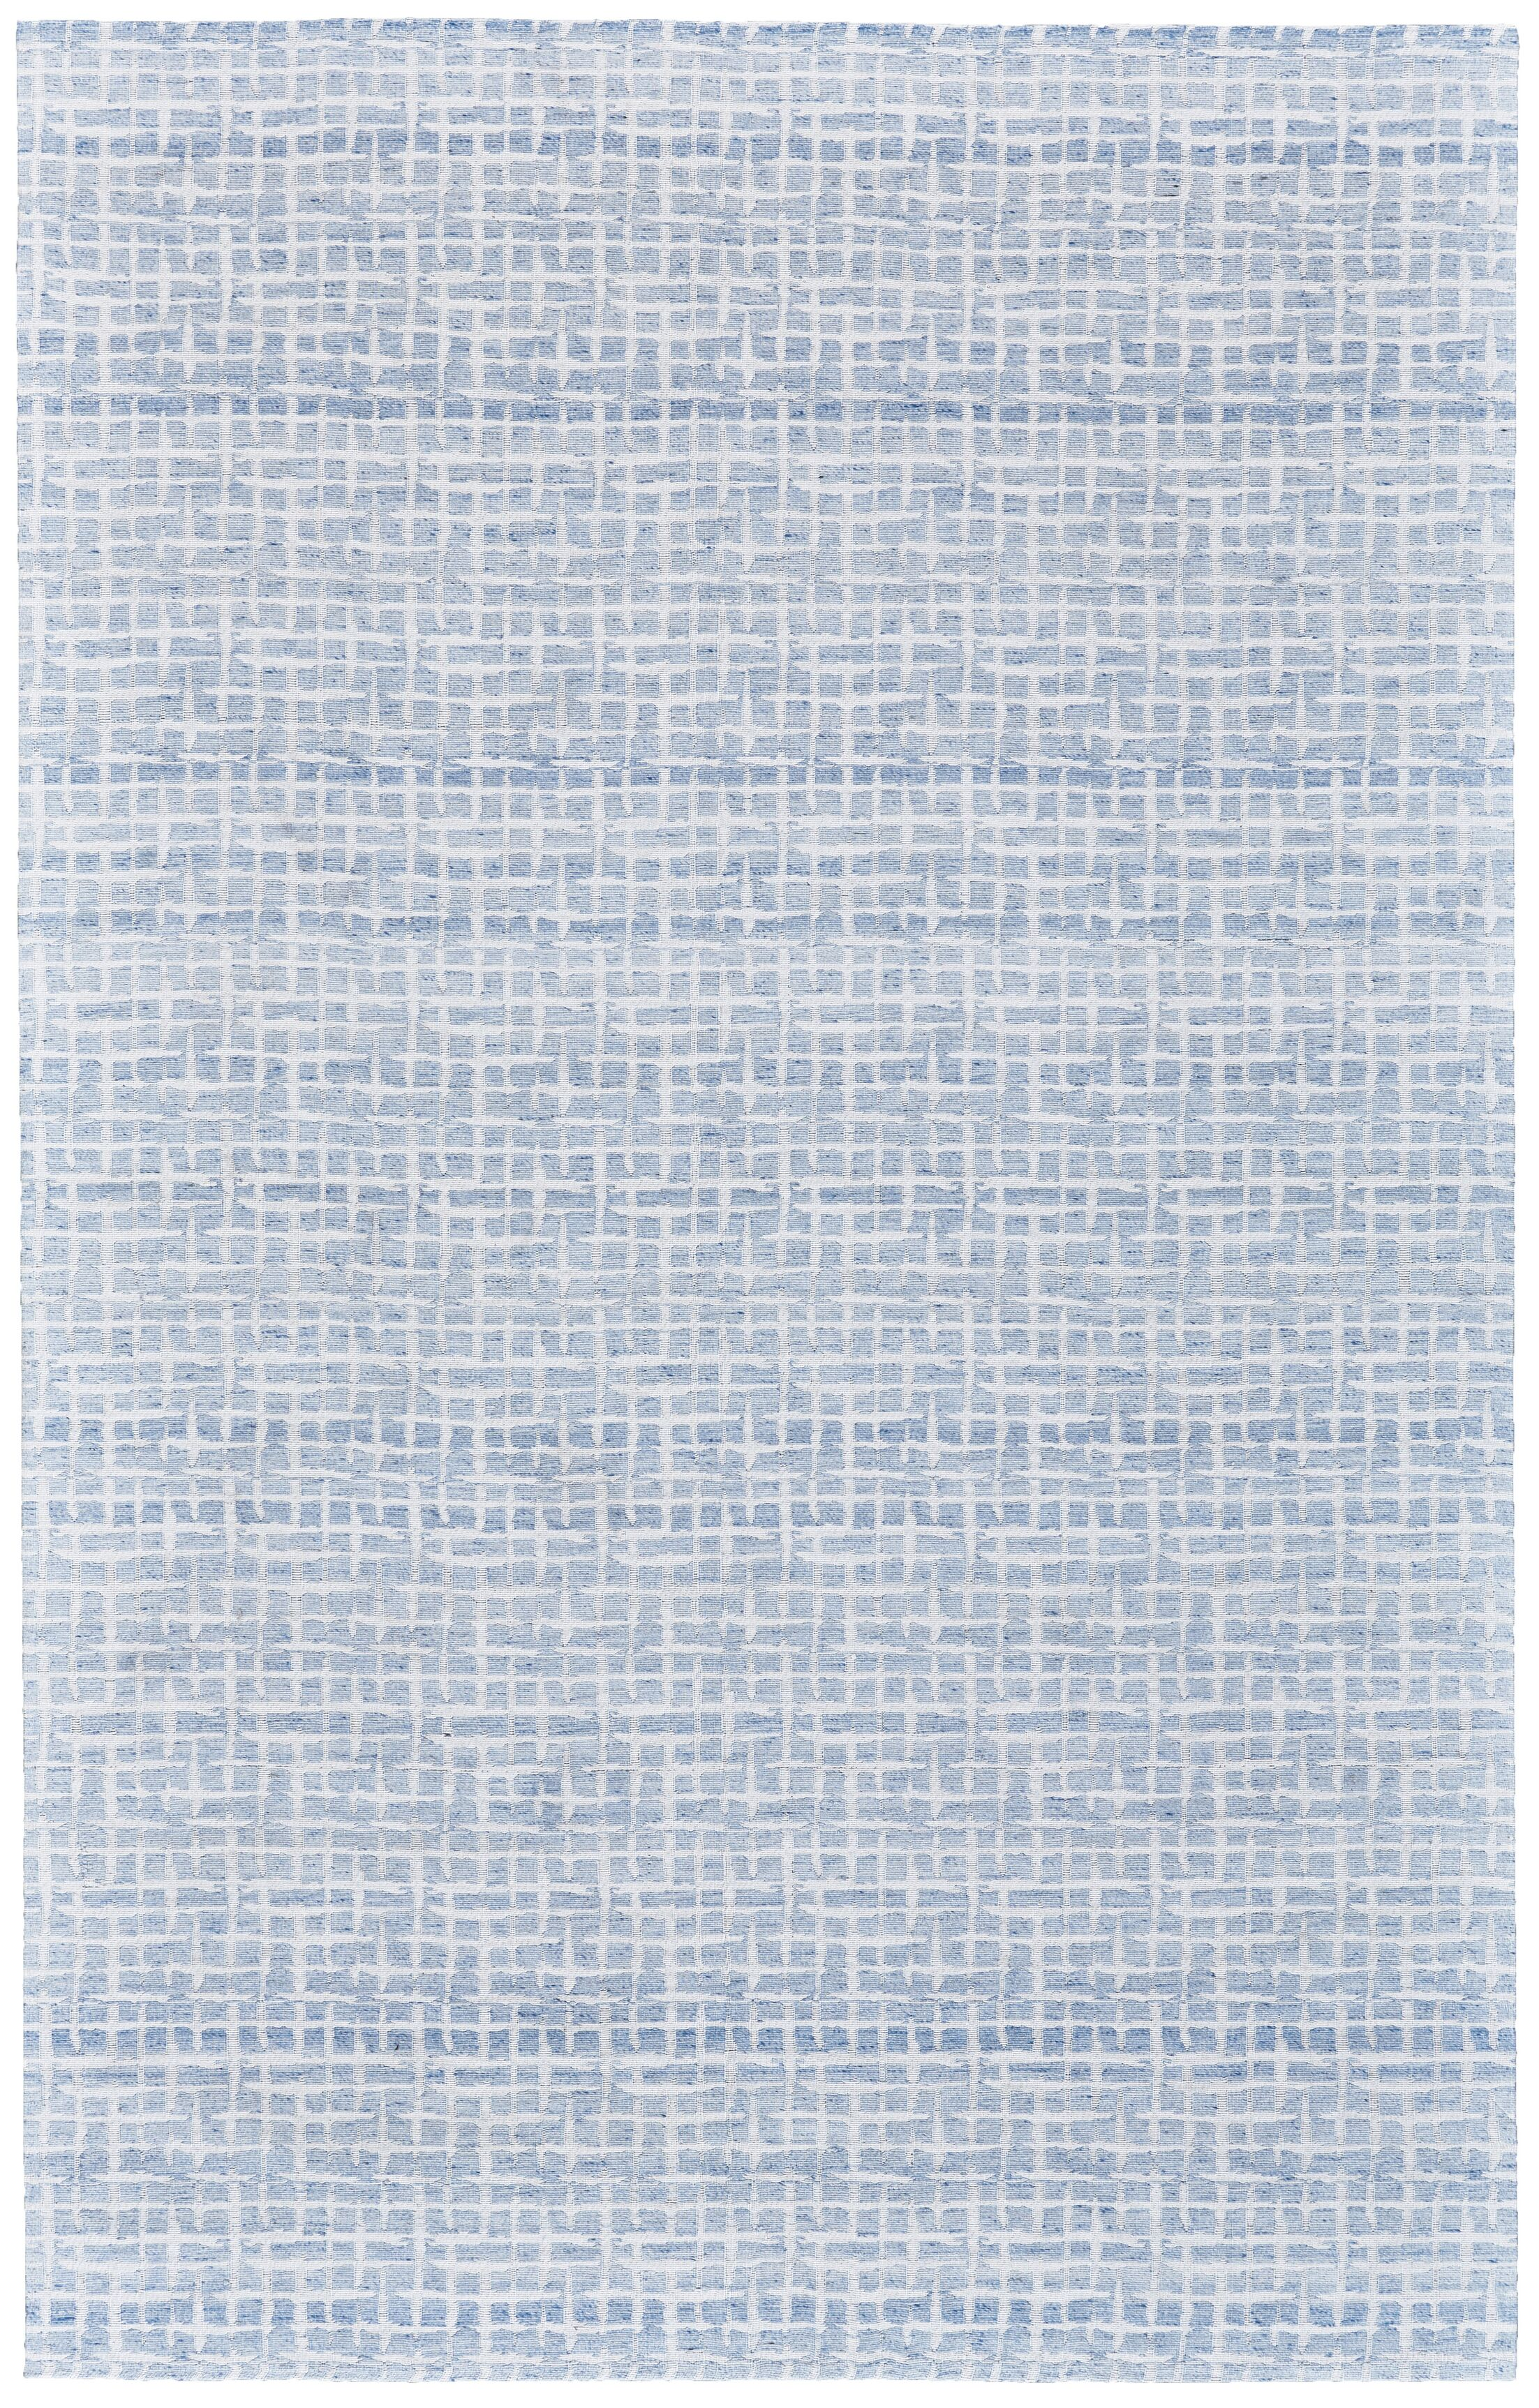 Jarice Hand-Woven White/Blue Area Rug Rug Size: Rectangle 4' x 6'